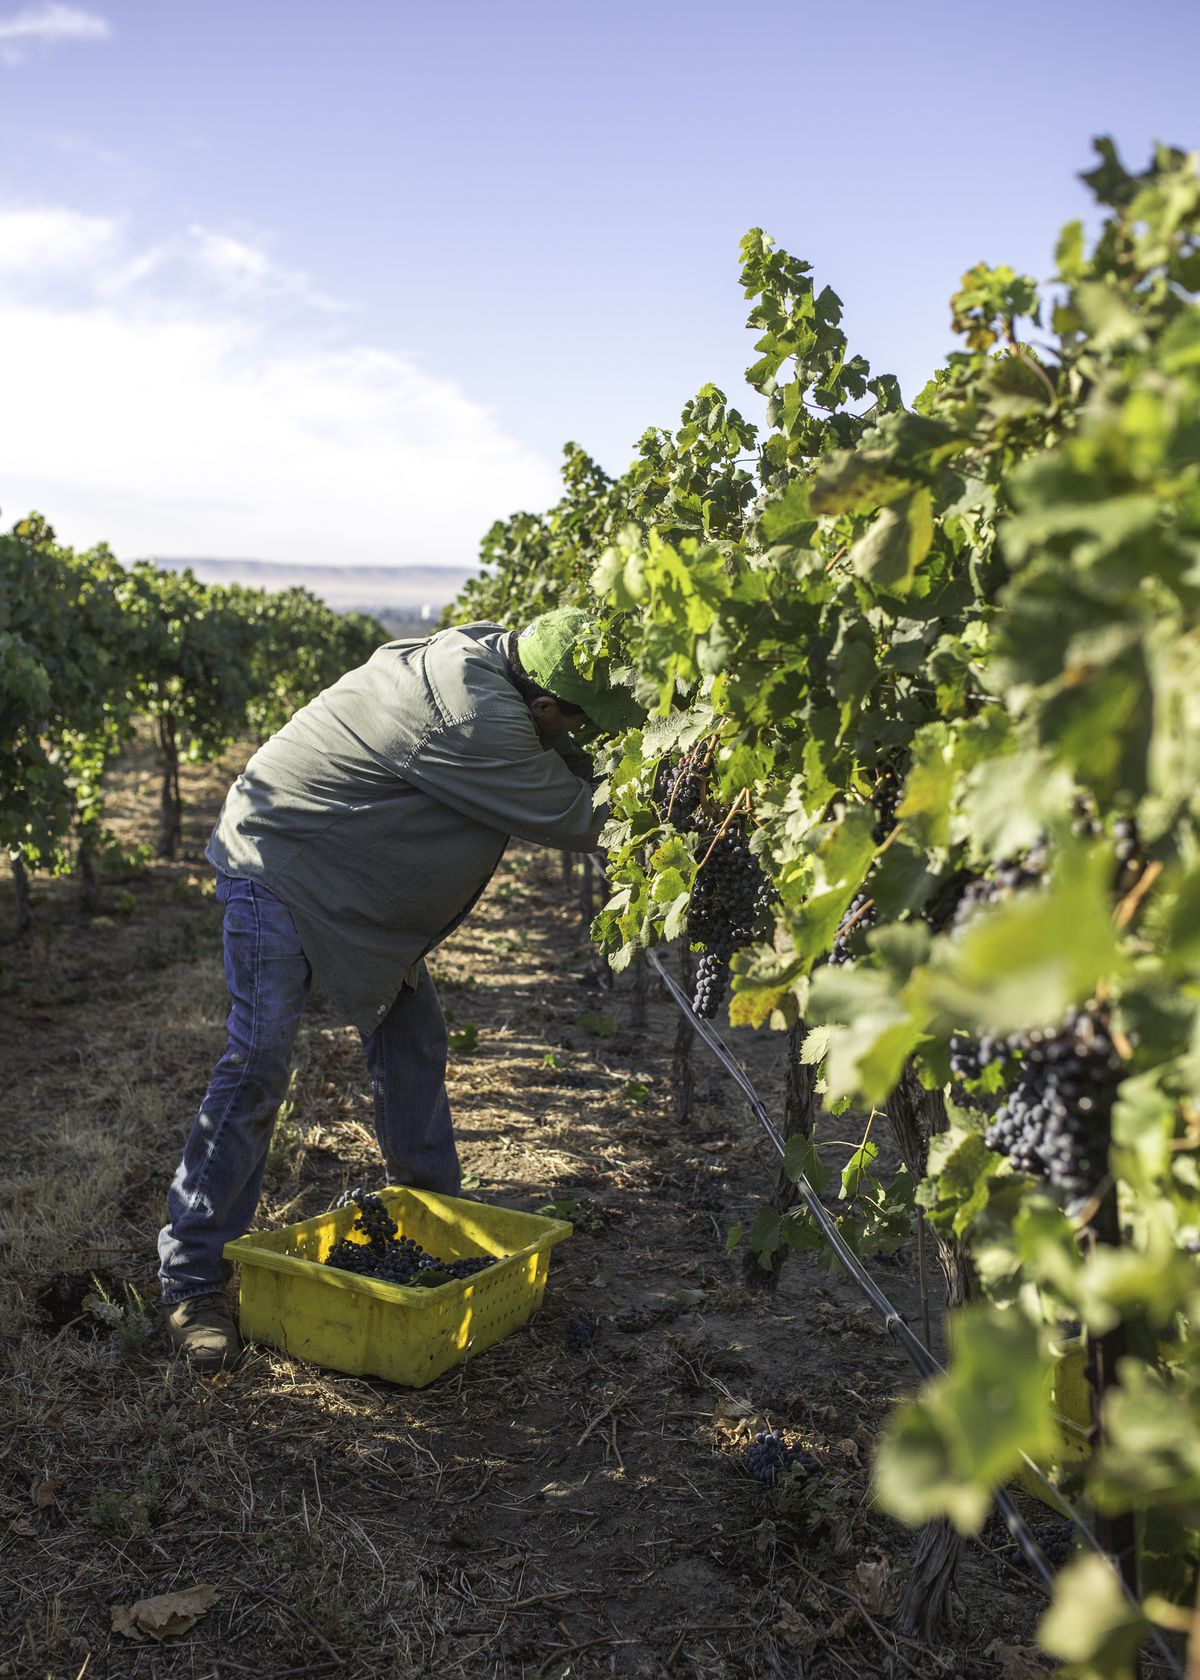 A man picks grapes in the field.